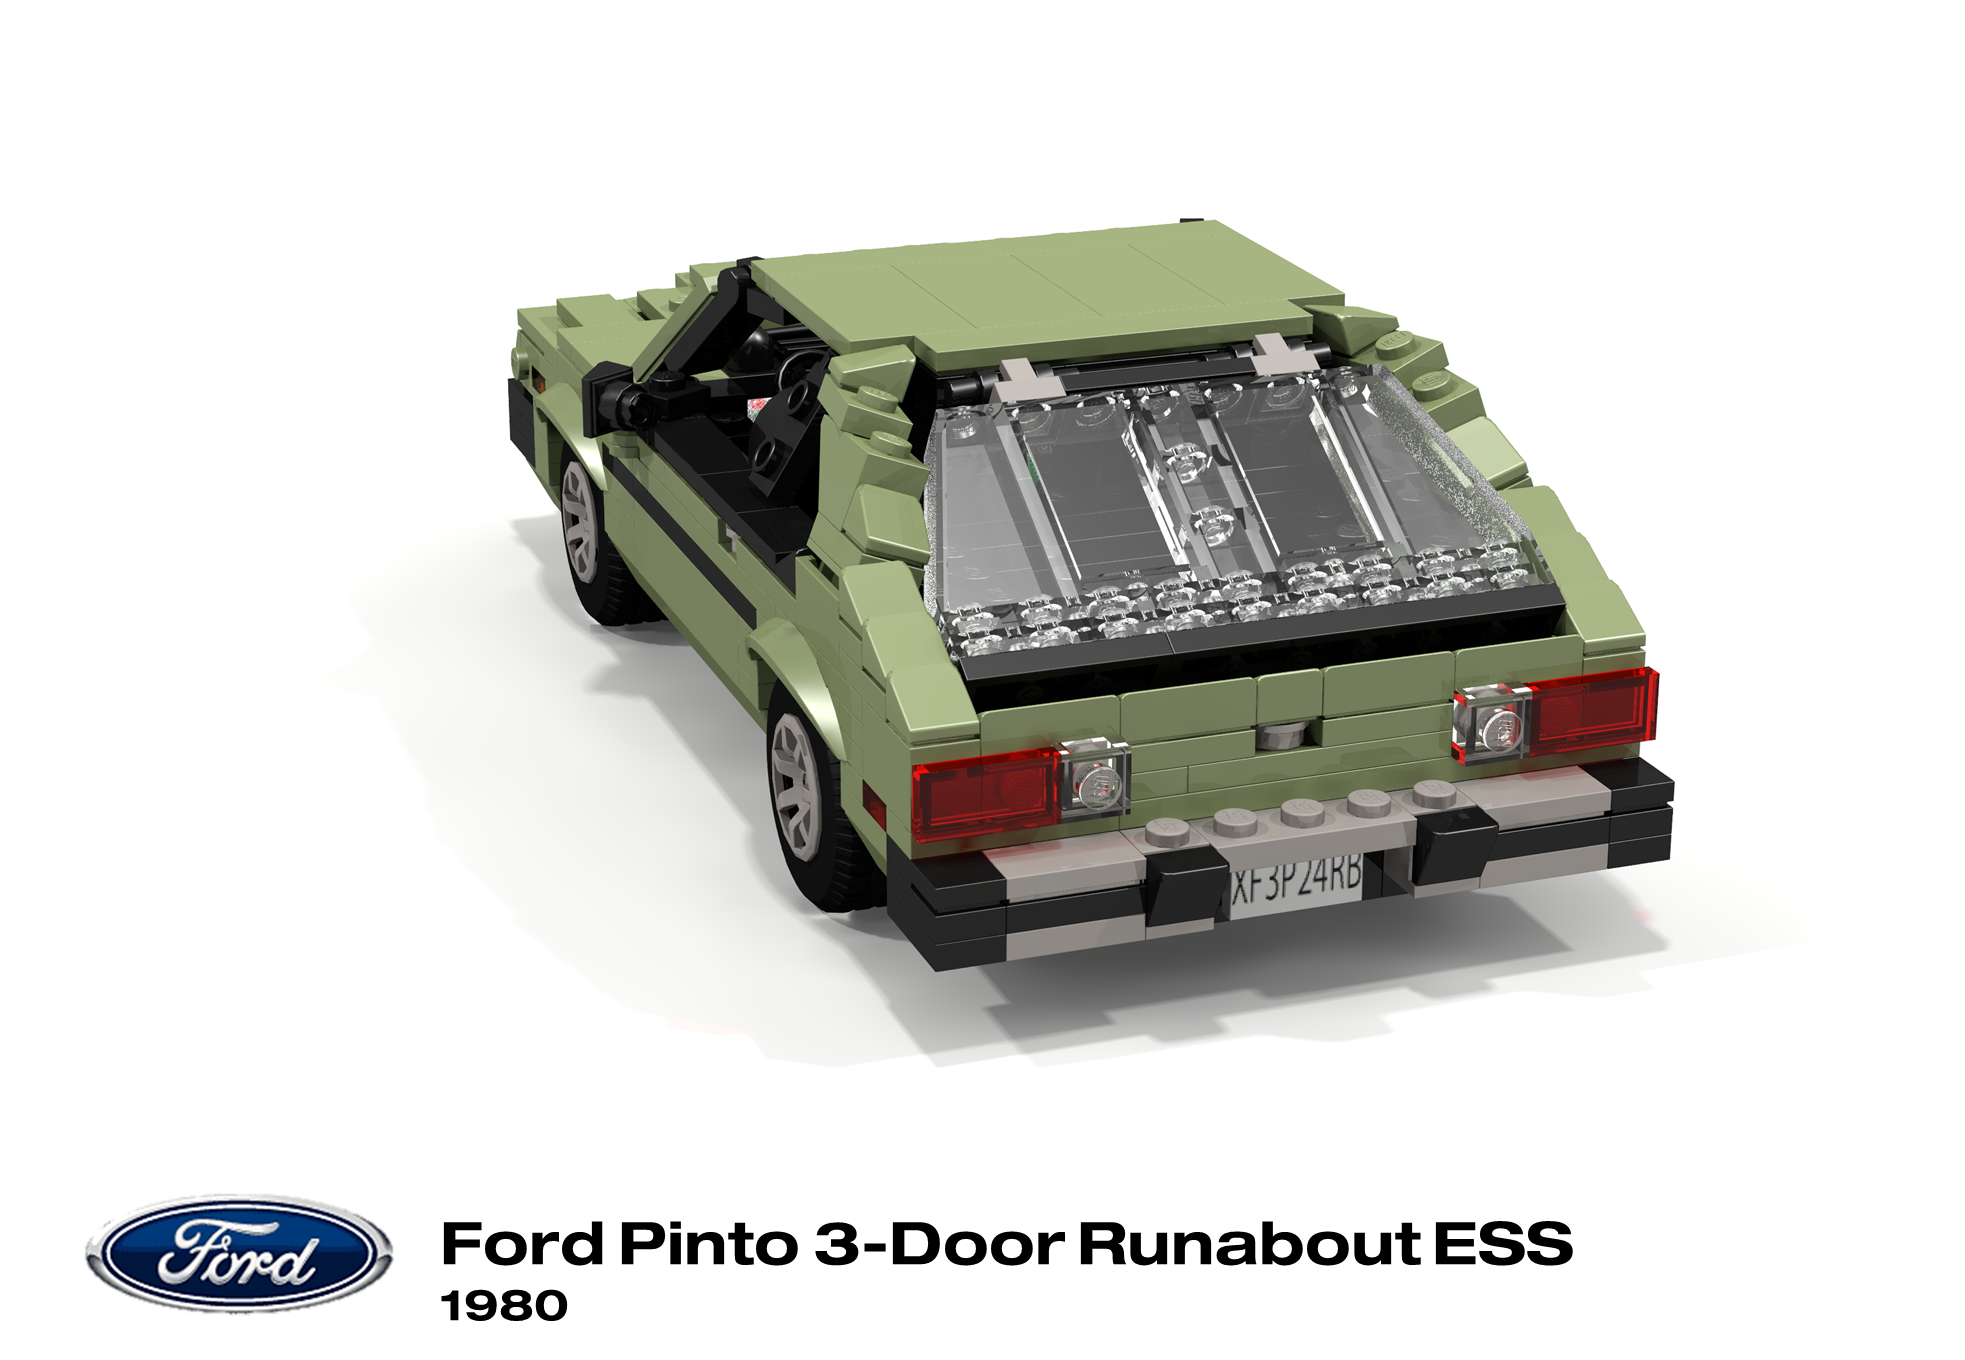 ford_pinto_runabout_ess_1980_06.png